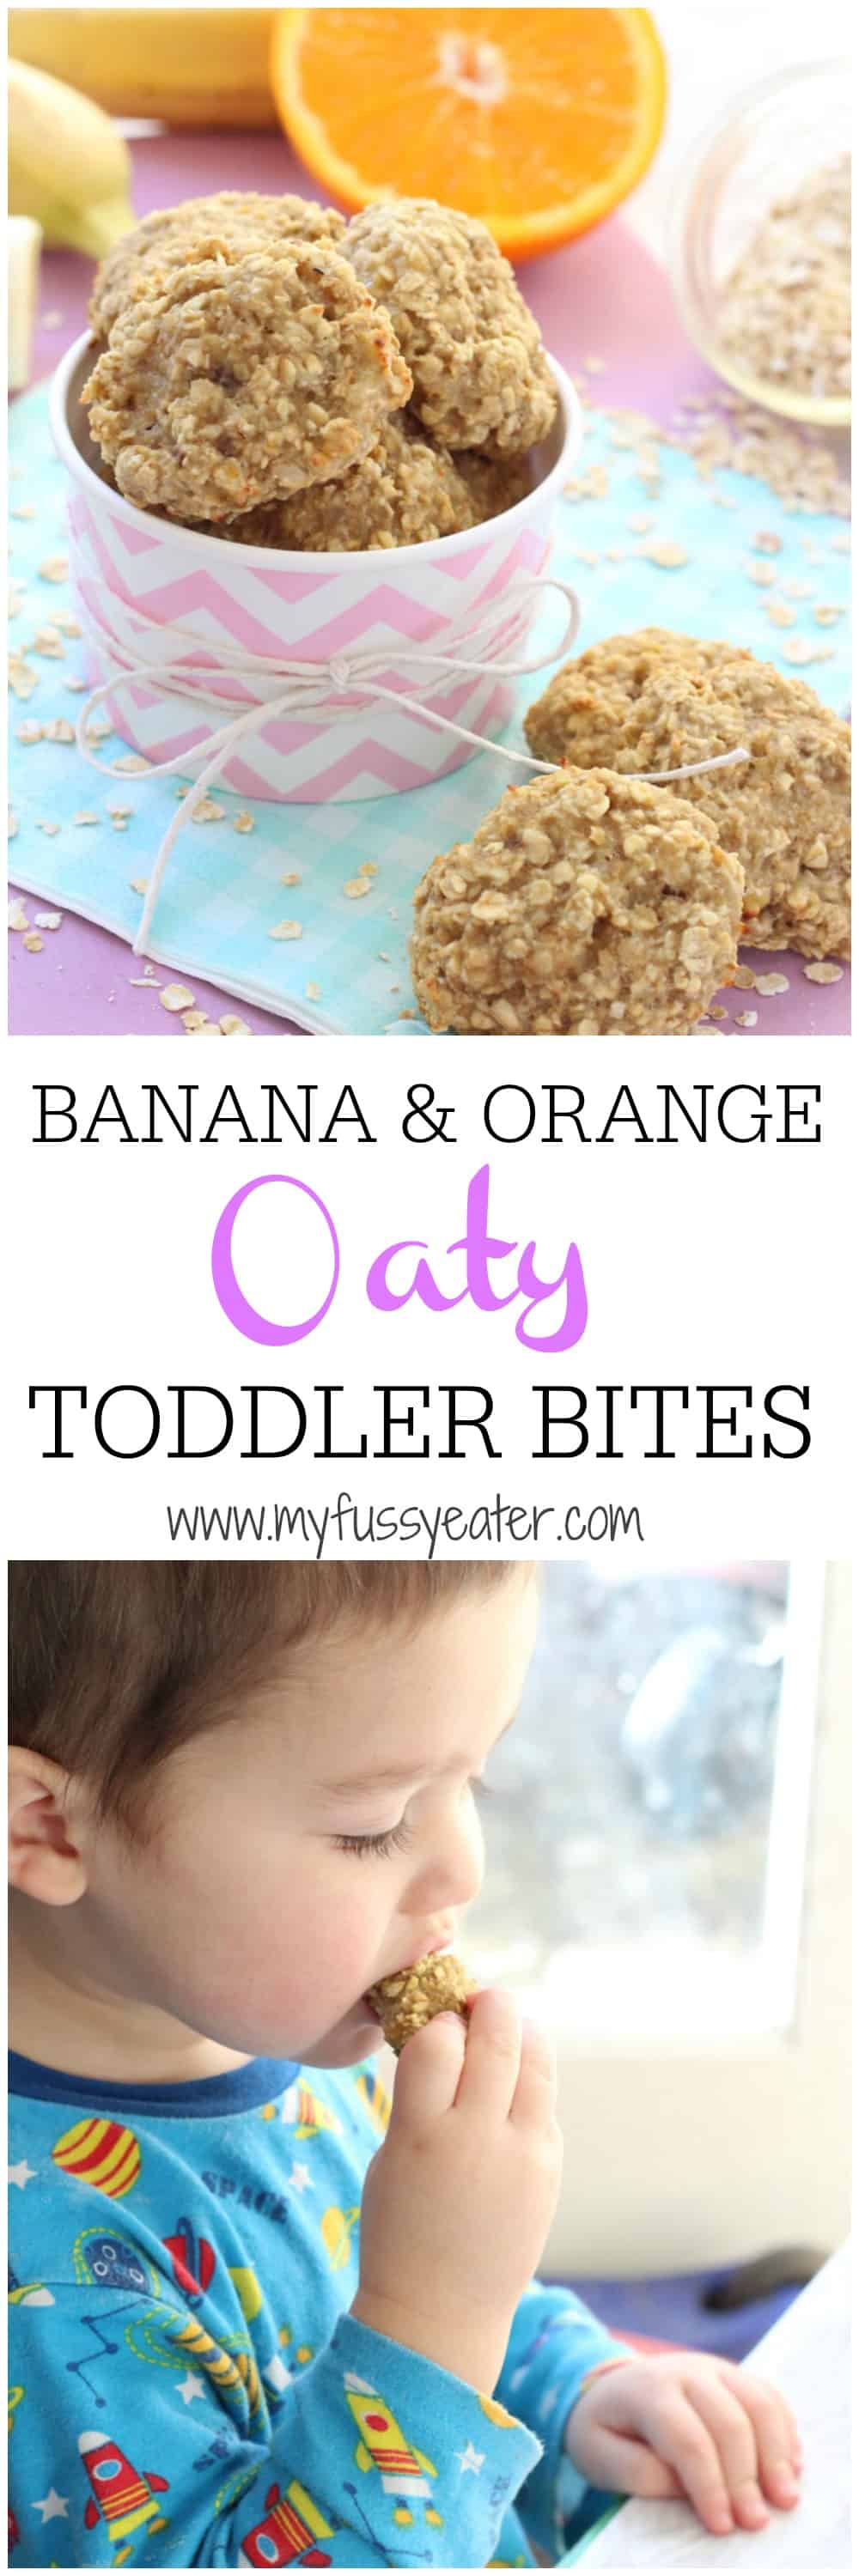 toddler bites pinterest pin